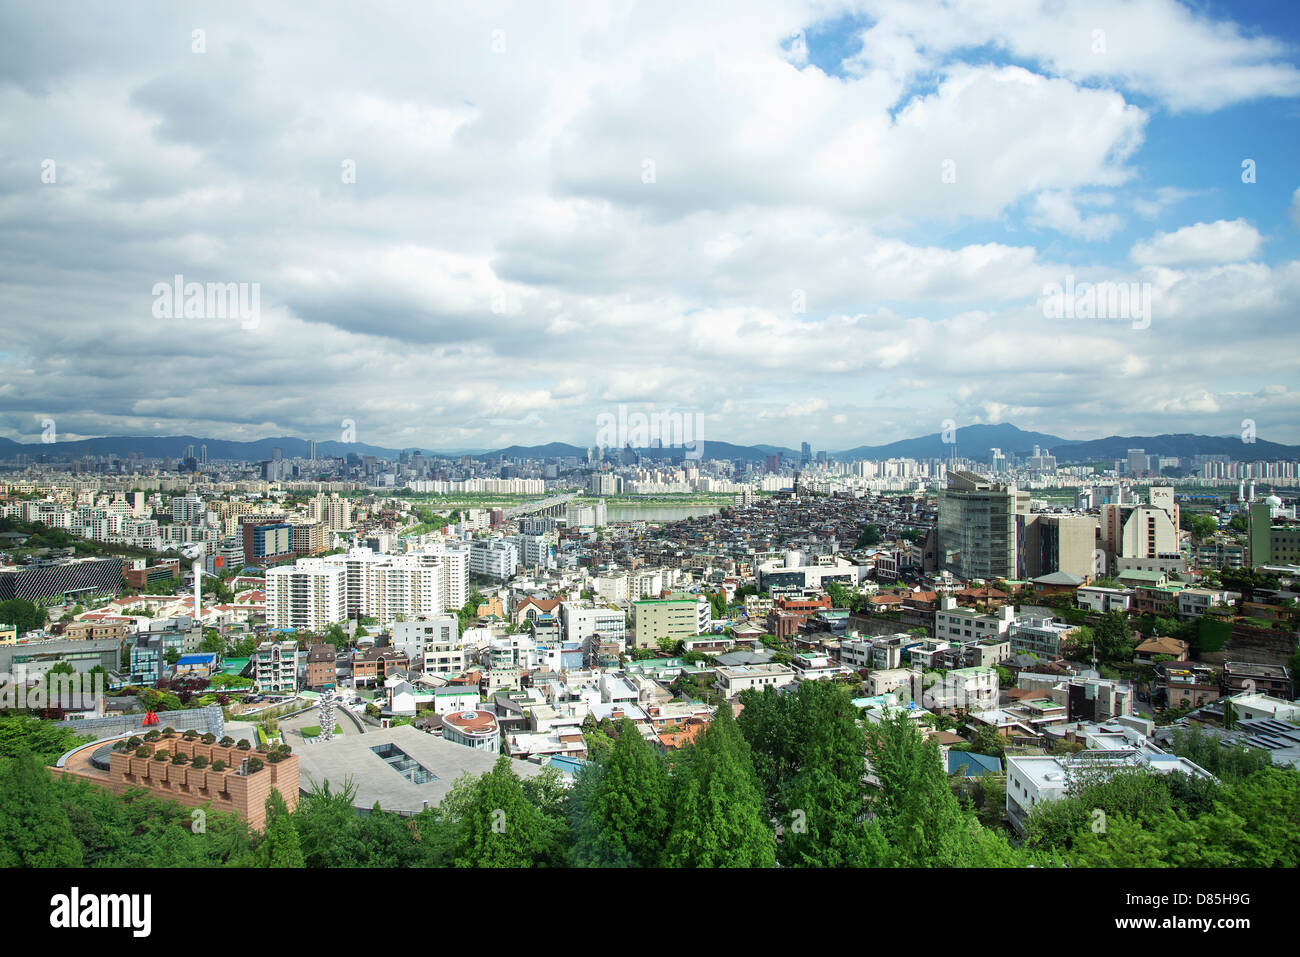 central seoul city in south korea - Stock Image